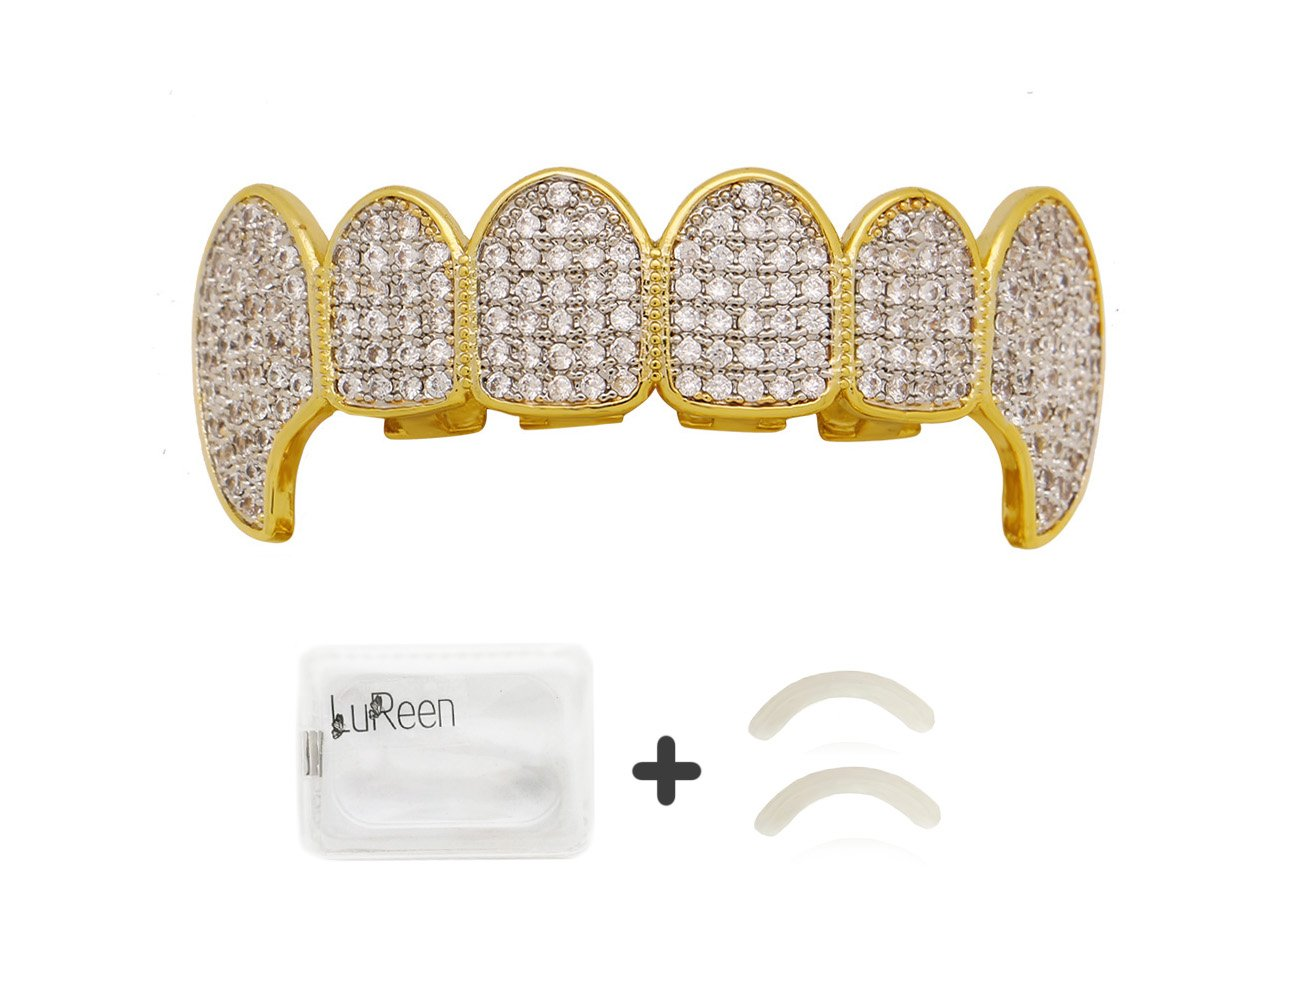 Lureen Gold Silver Twotone Iced Out CZ Vampire Fangs Grillz Set + 2 EXTRA Molding Bars (Top Grillz)